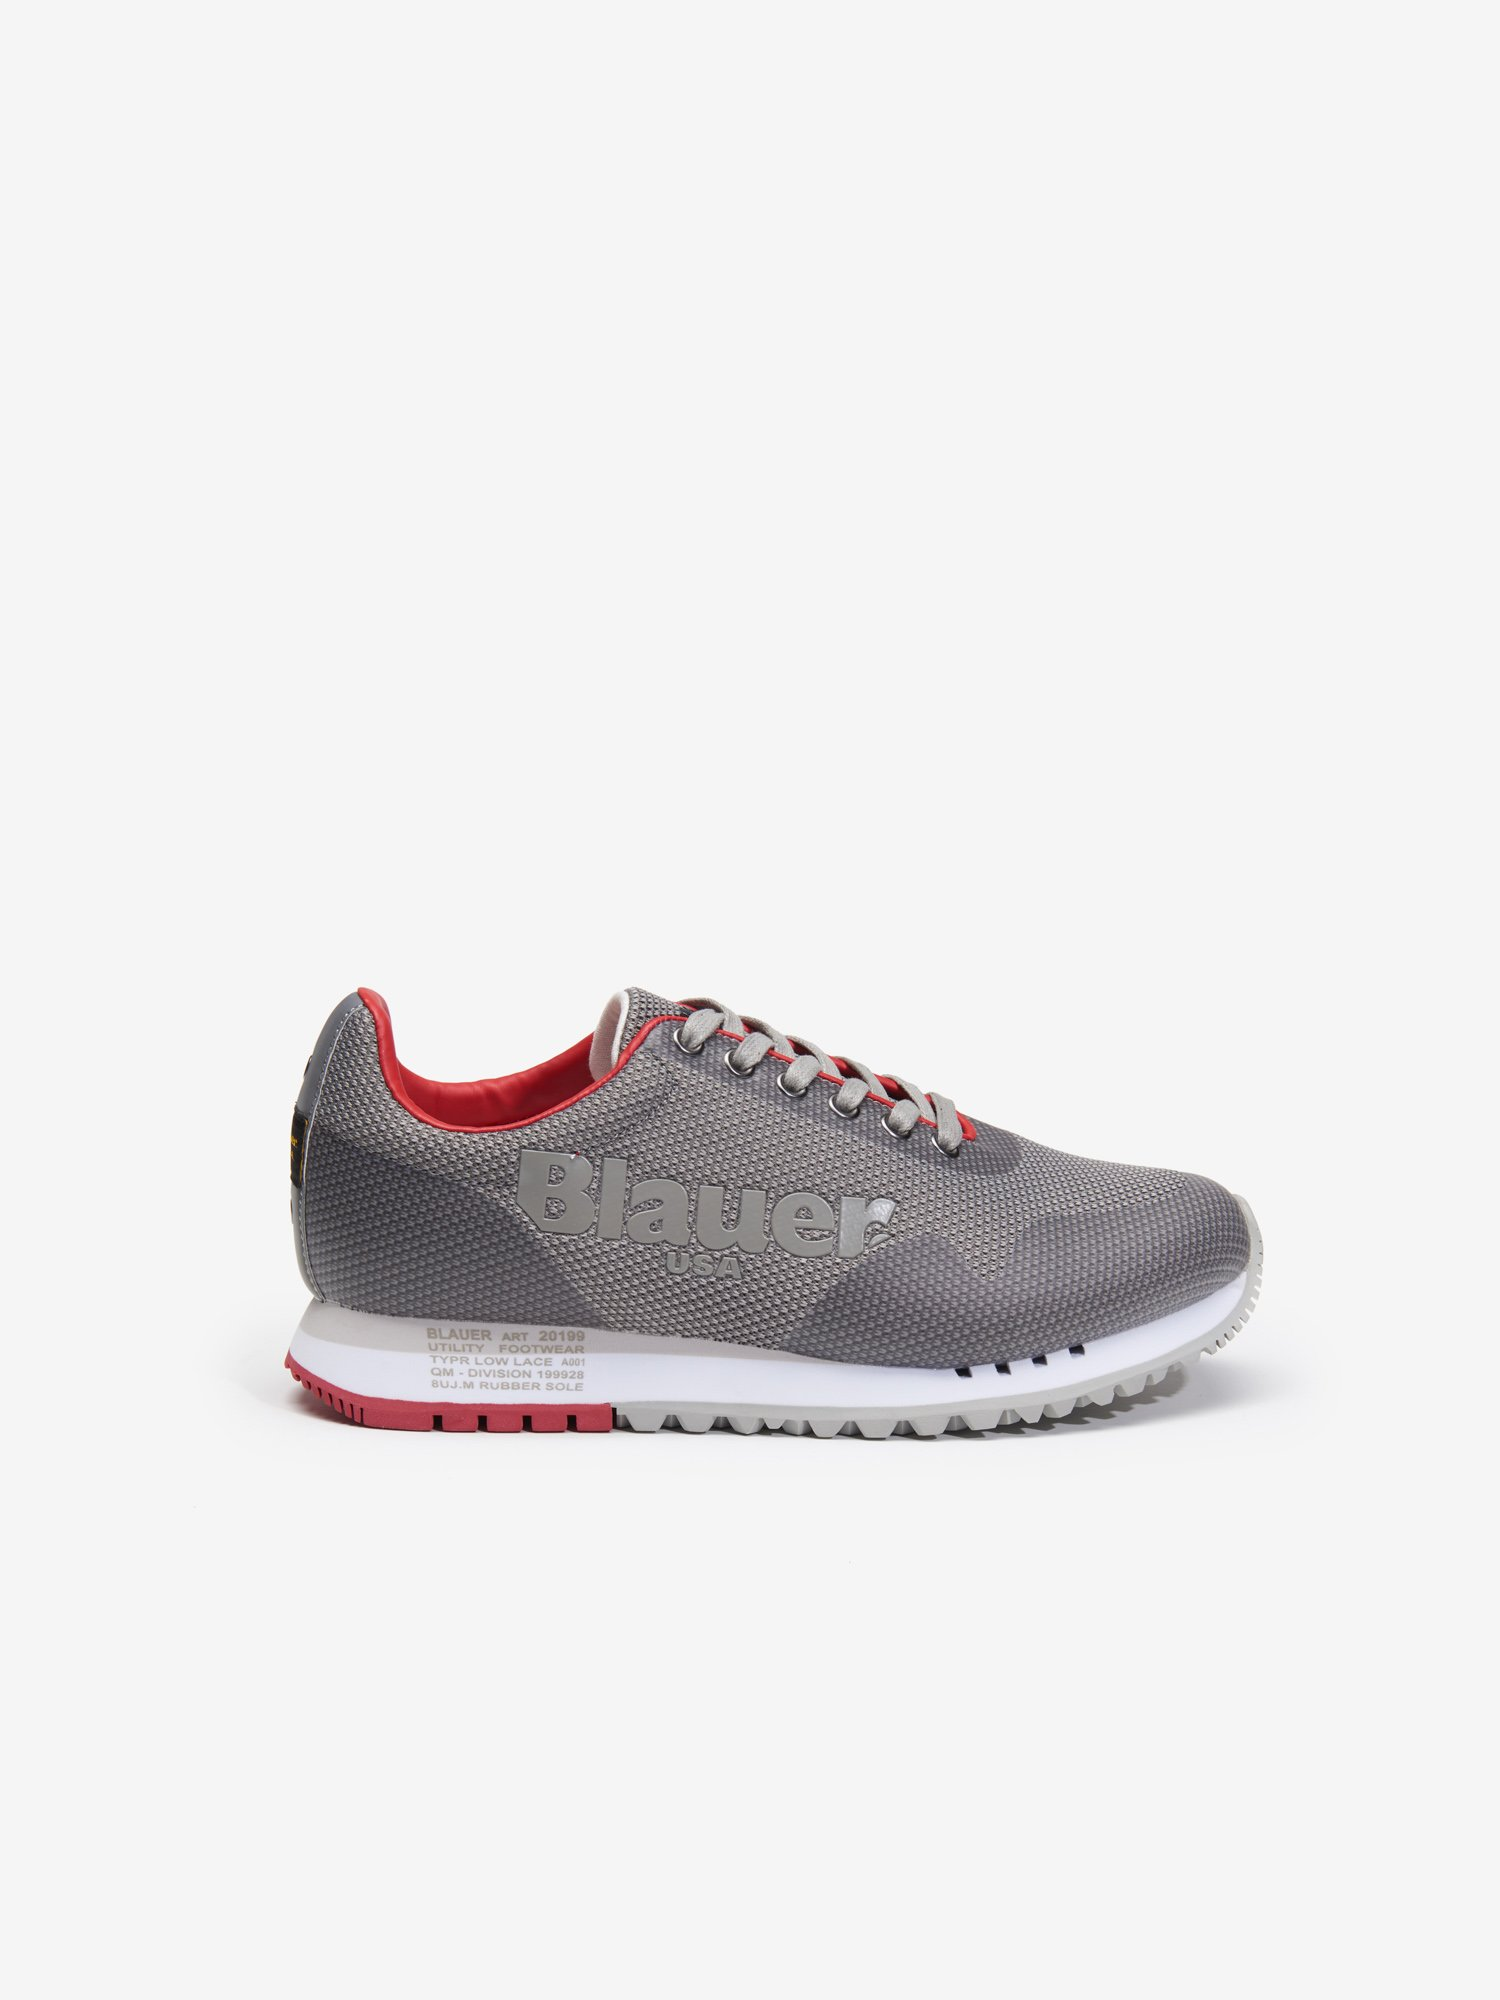 c634937280a936 Blauer - DENVER - Mouse Grey - 1 ...